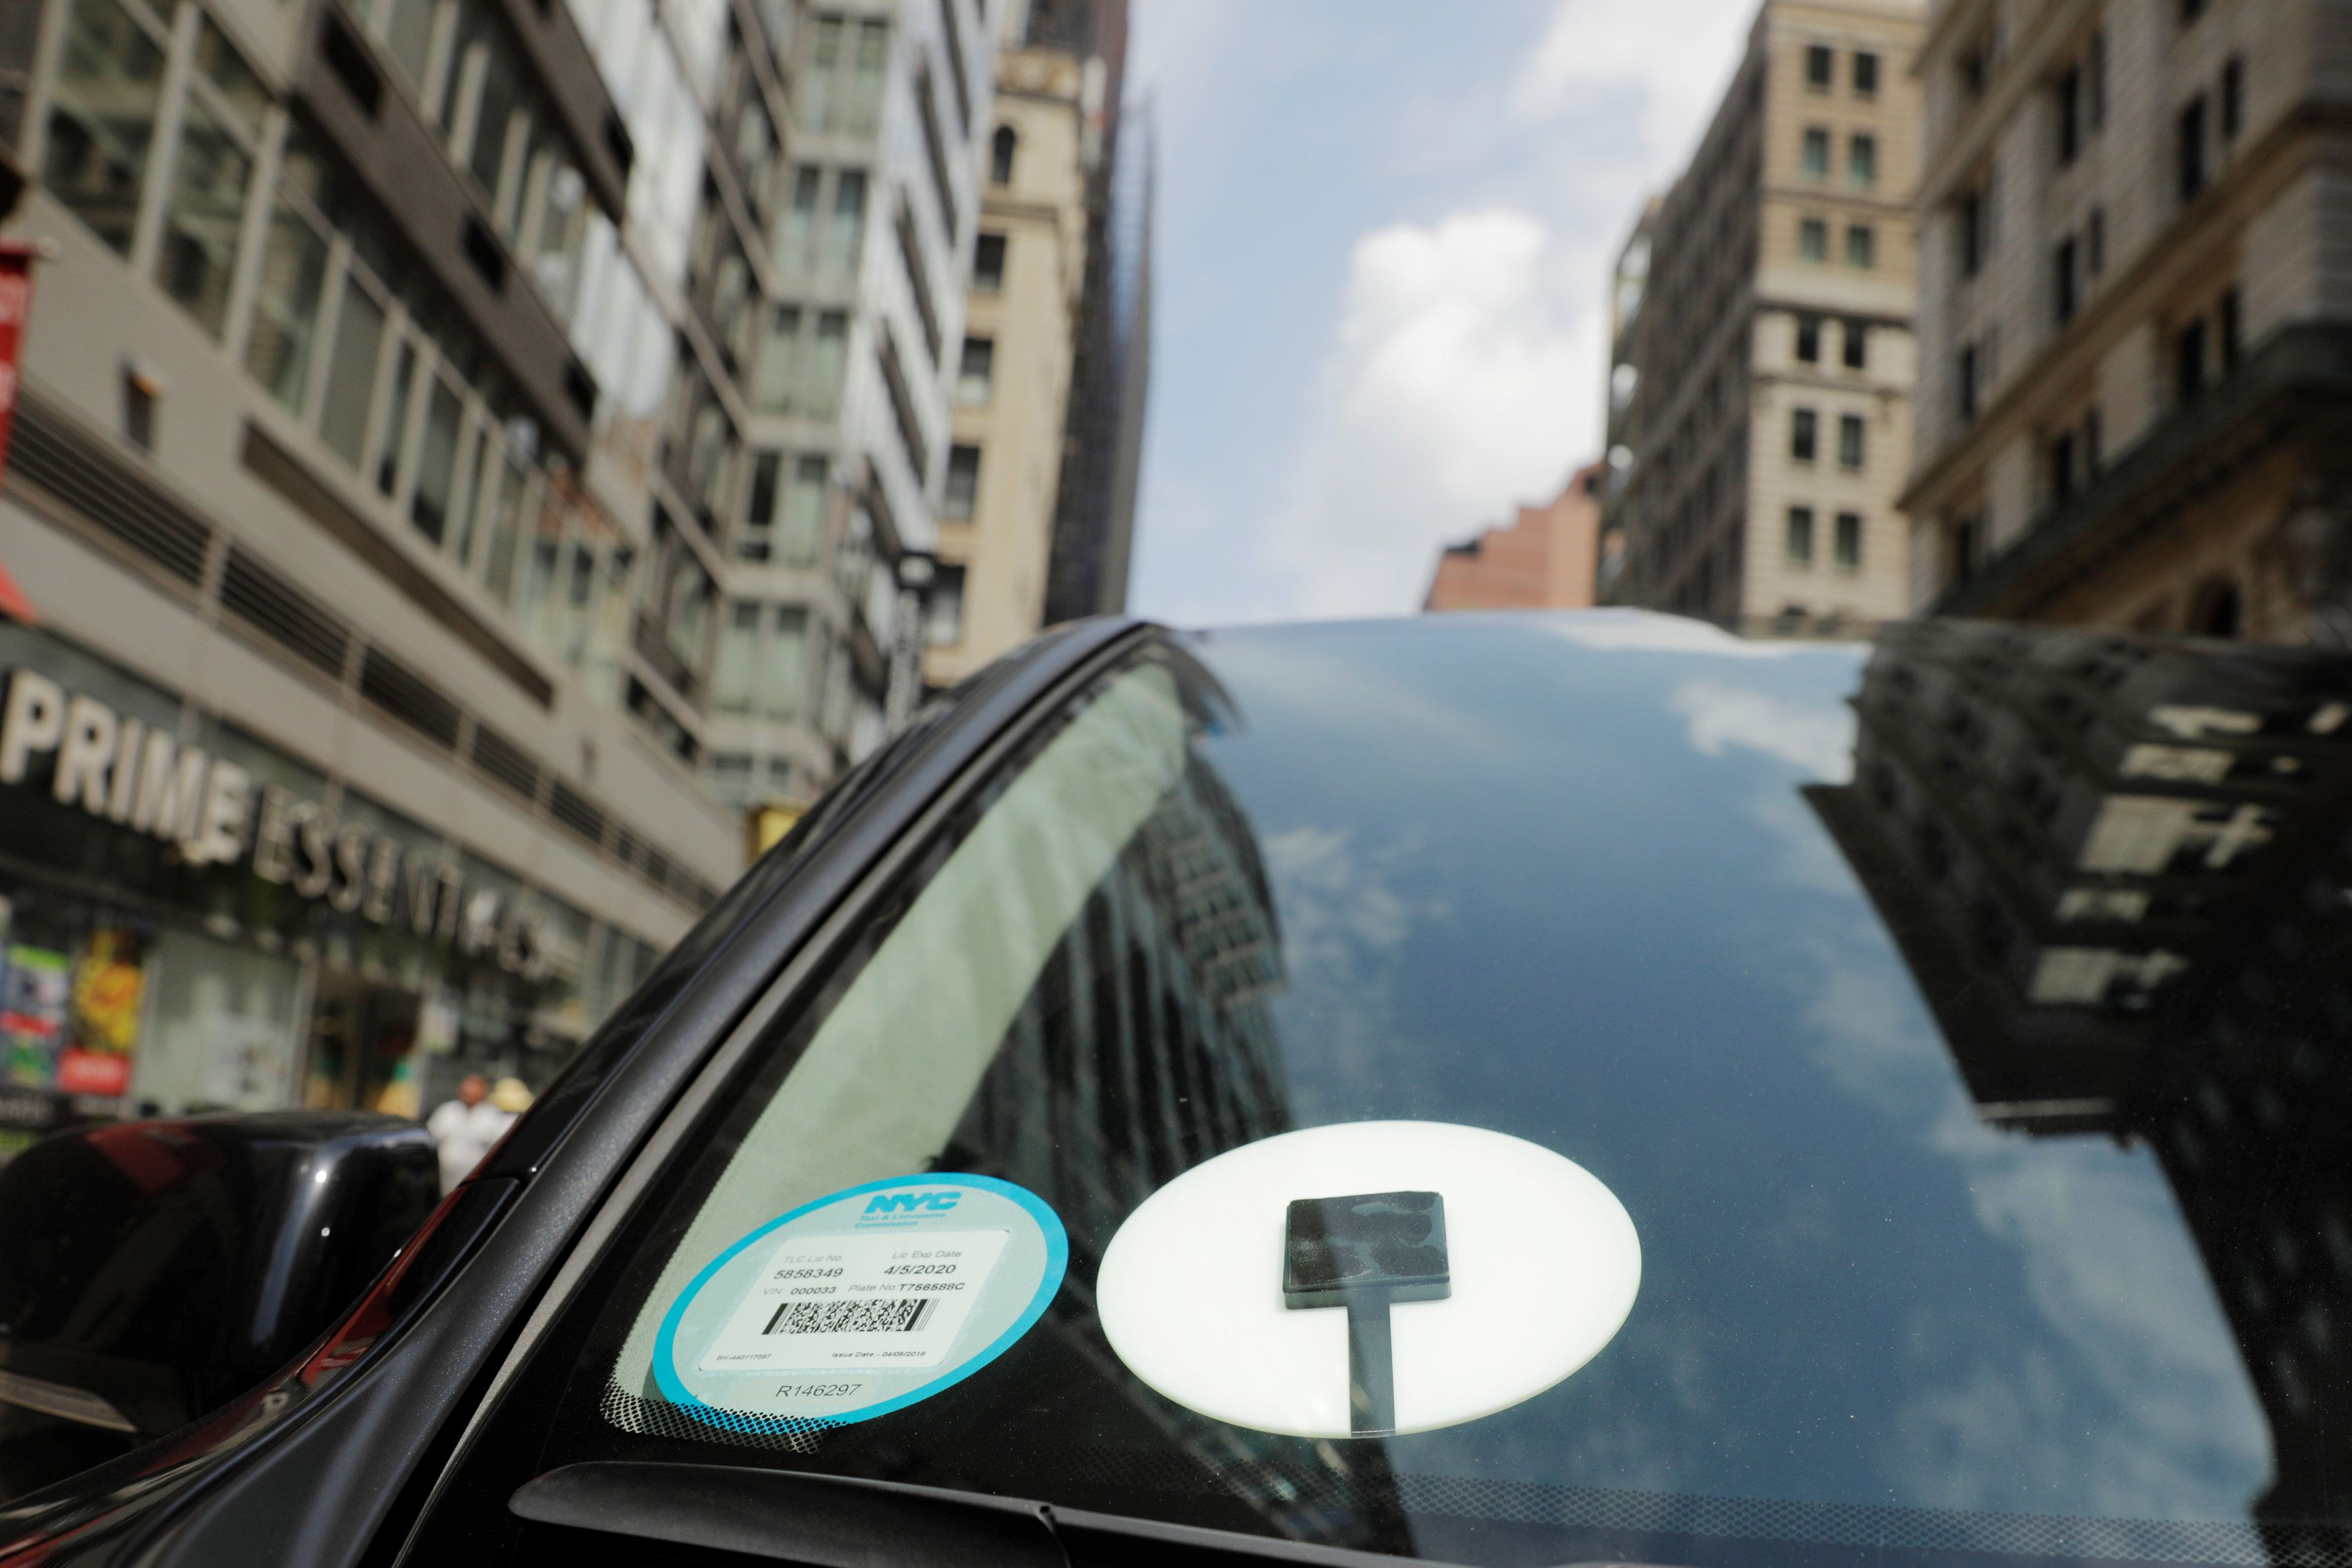 NYC City Council to consider pause in granting Uber licenses